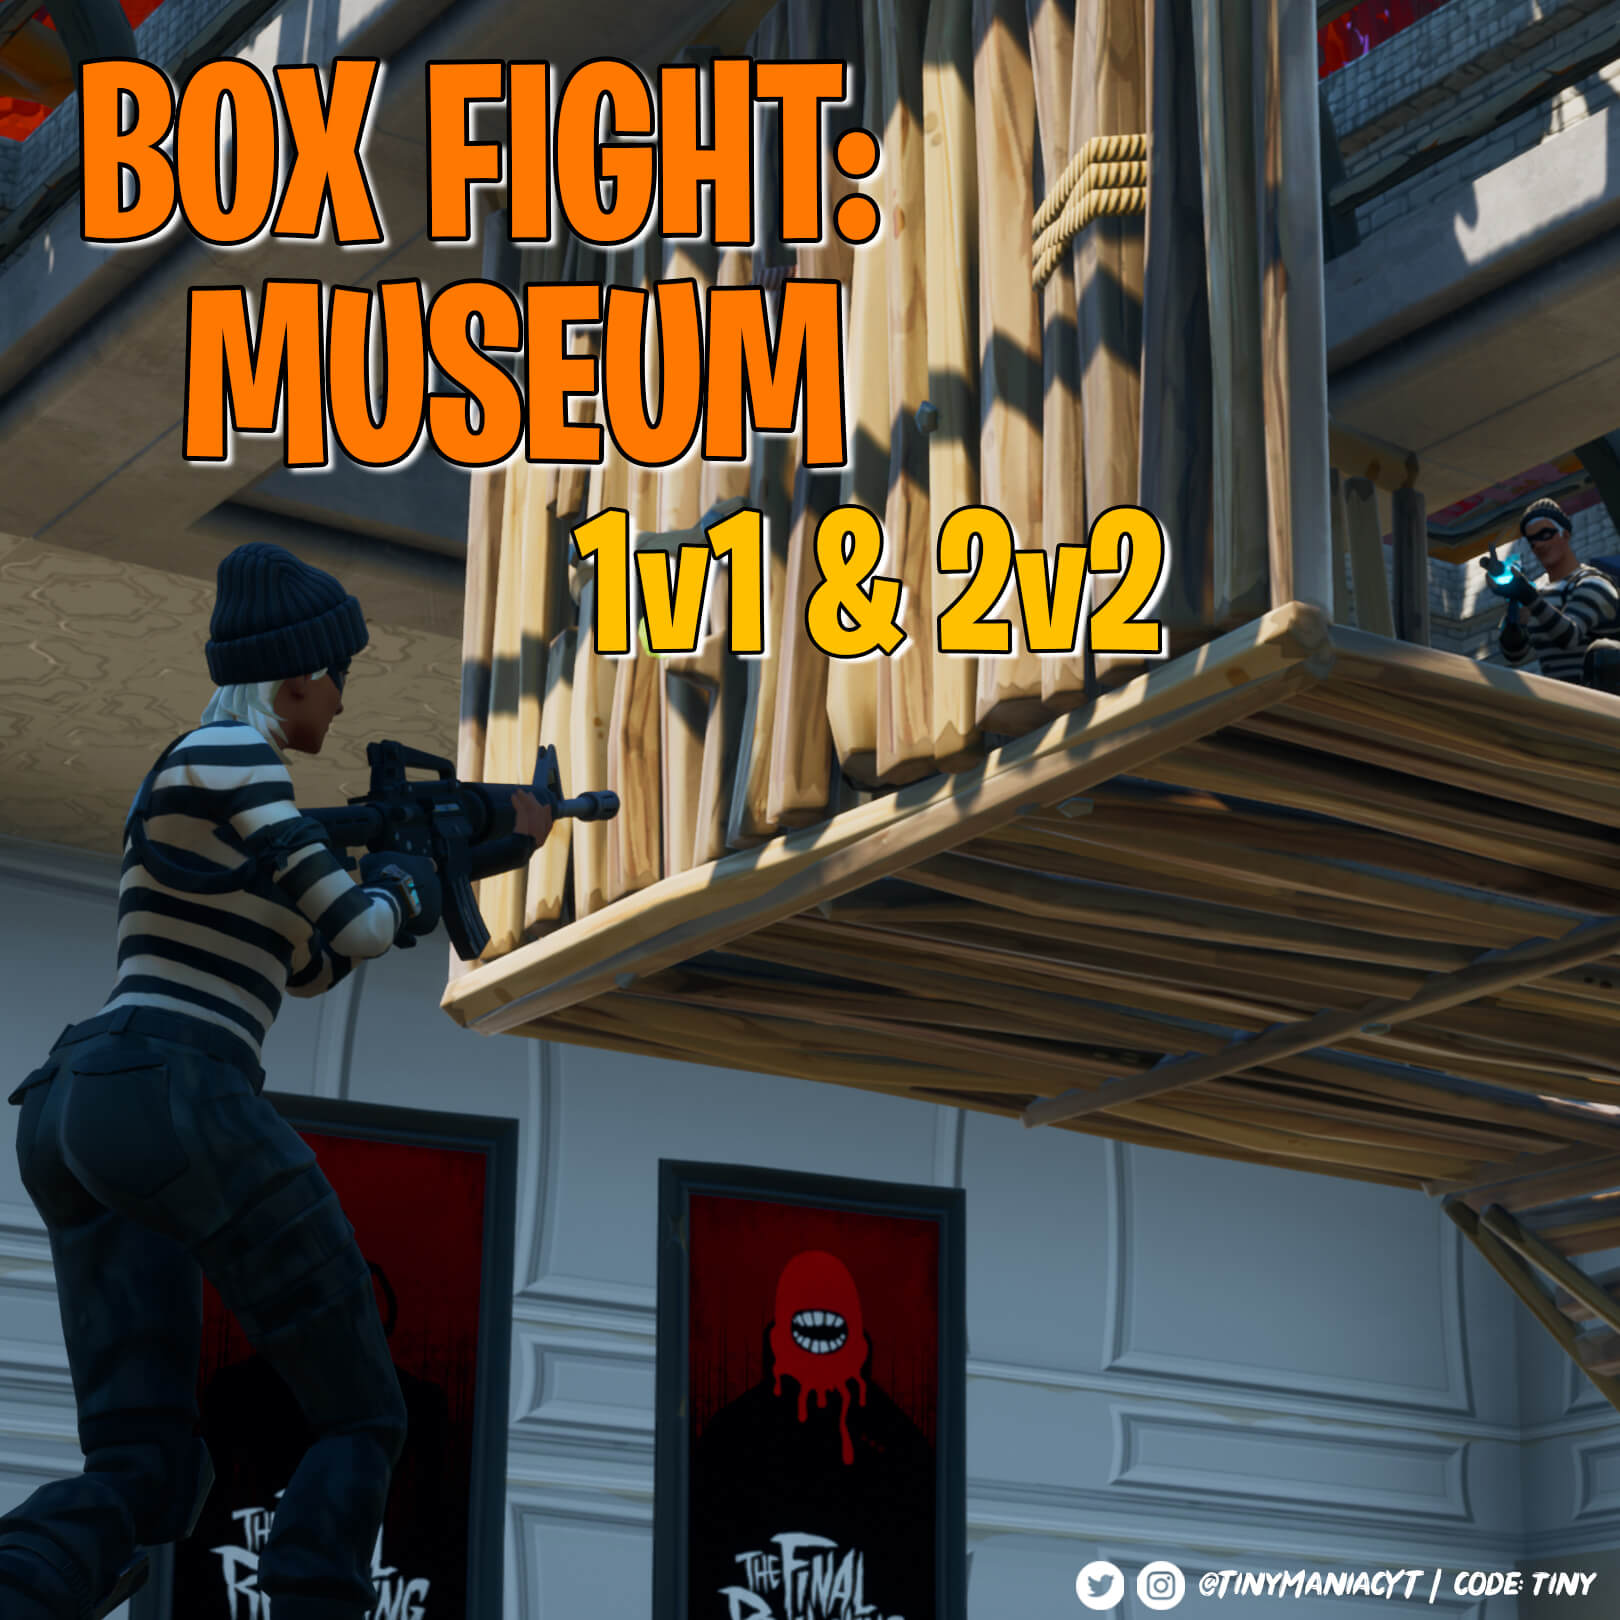 BOX FIGHT: MUSEUM | 1V1 & 2V2